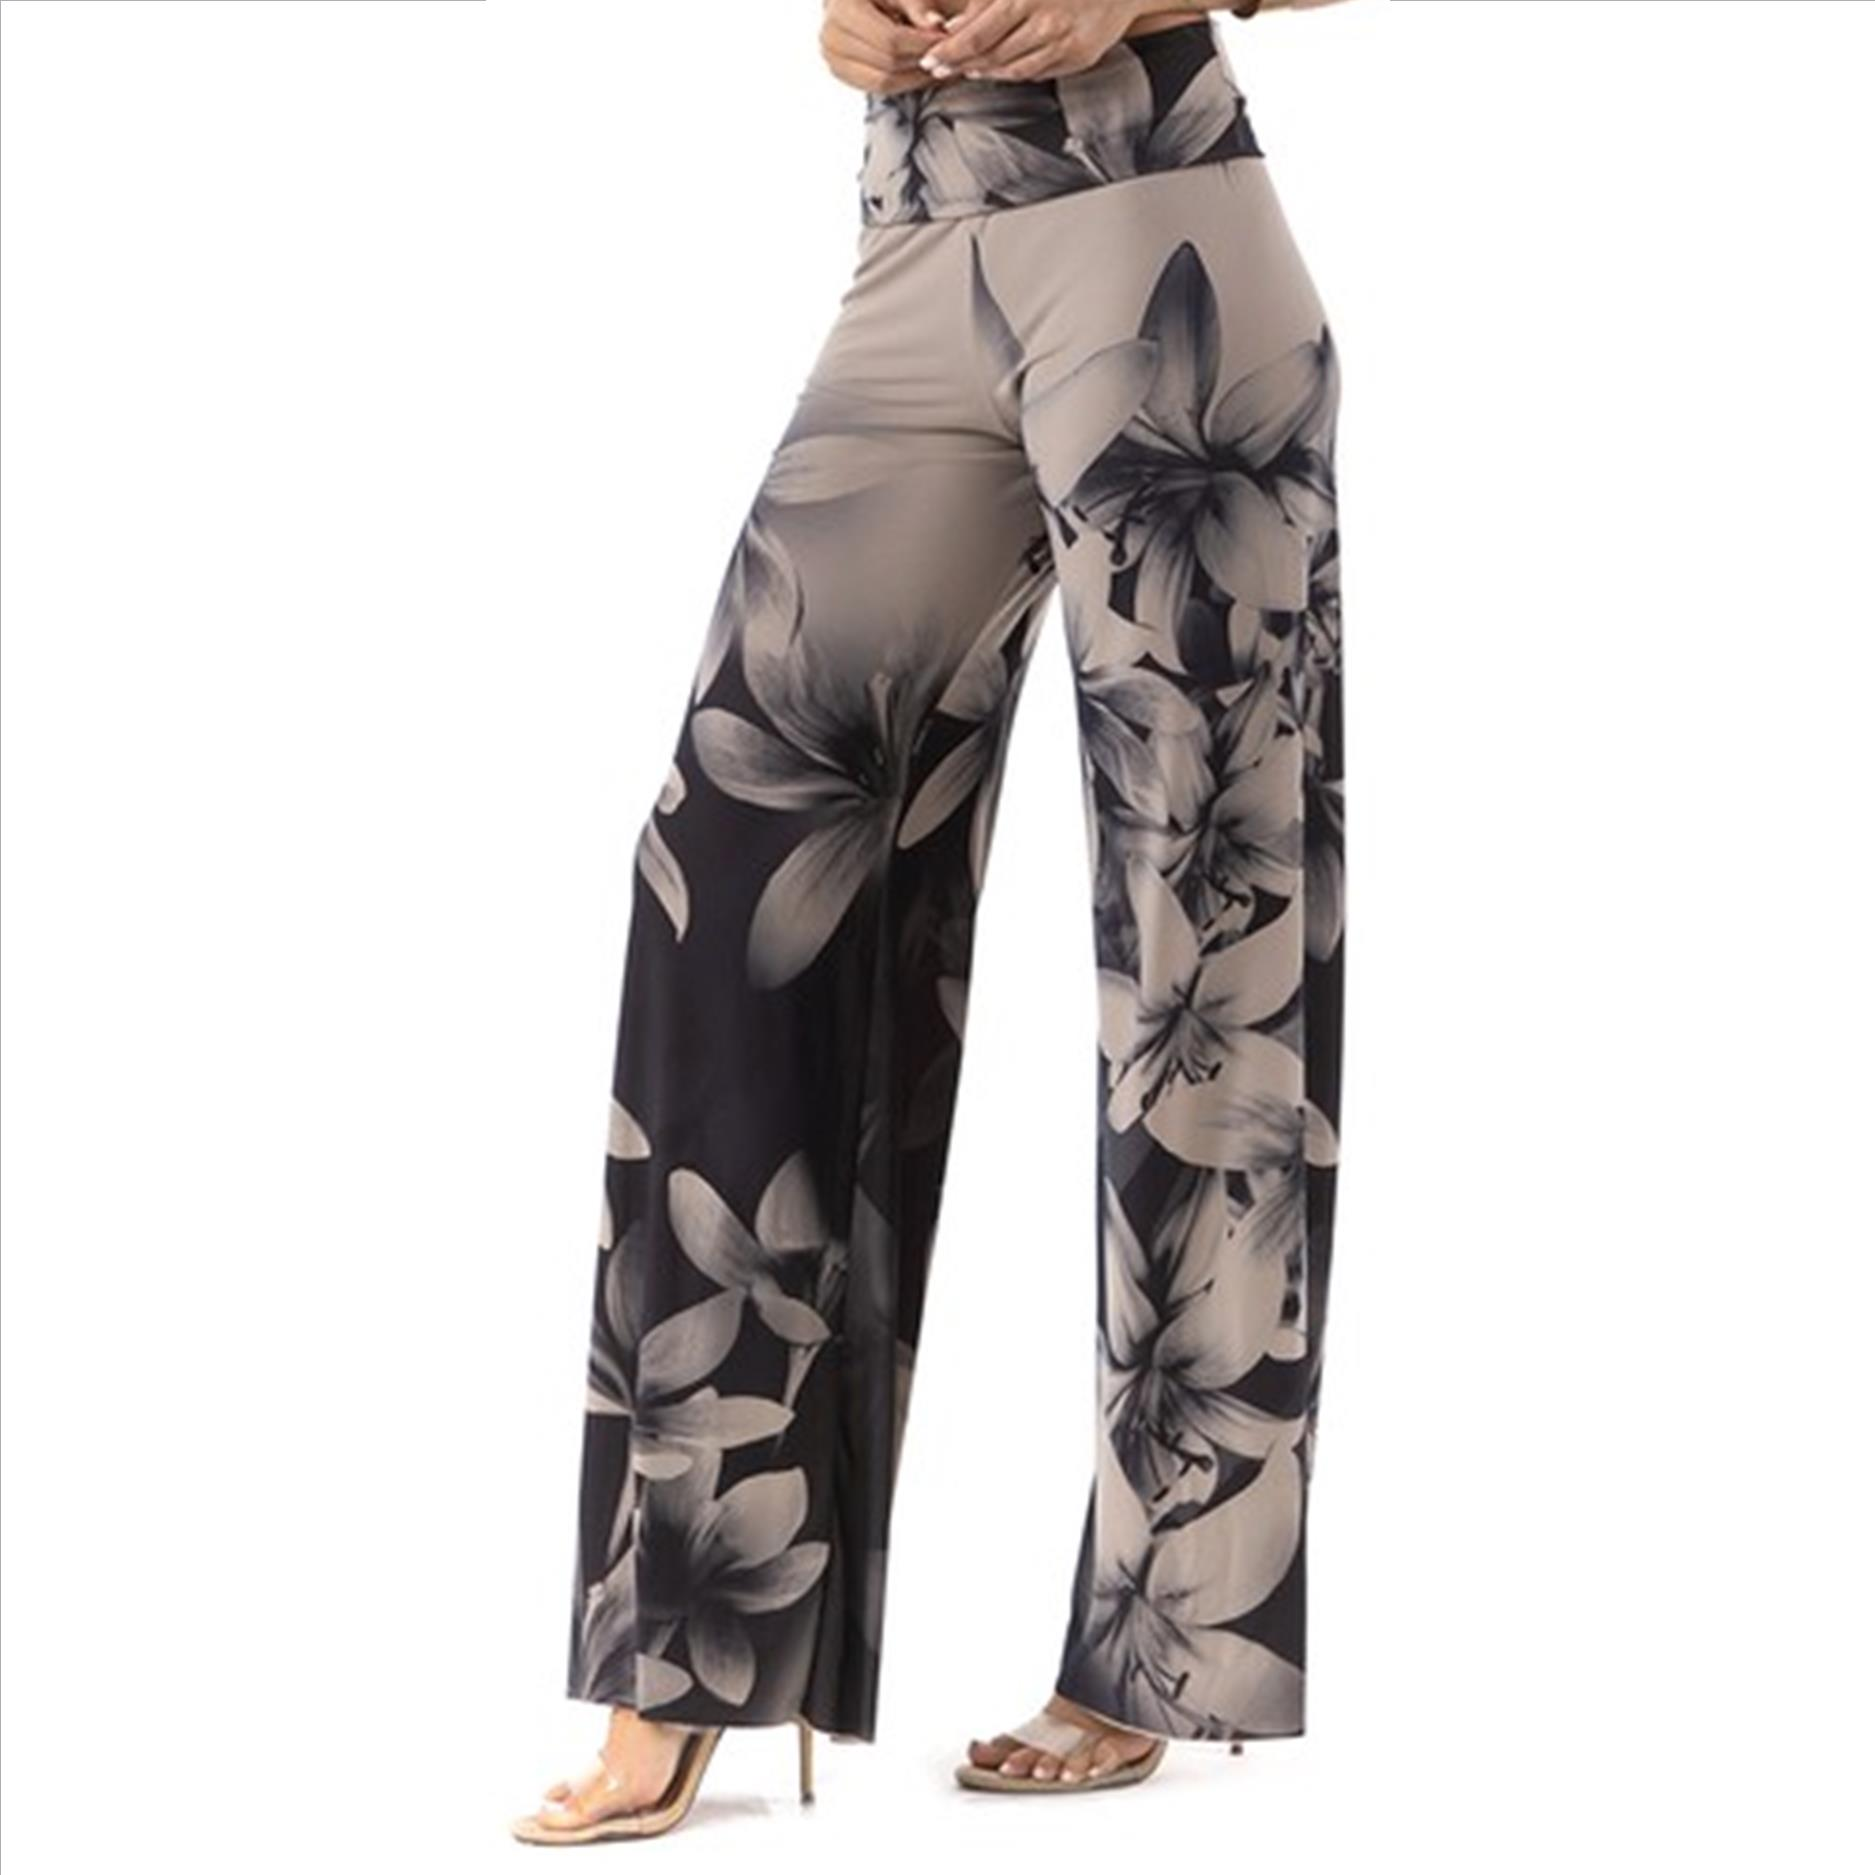 Plus Size Palazzo Pants with Pockets - Dark Lily